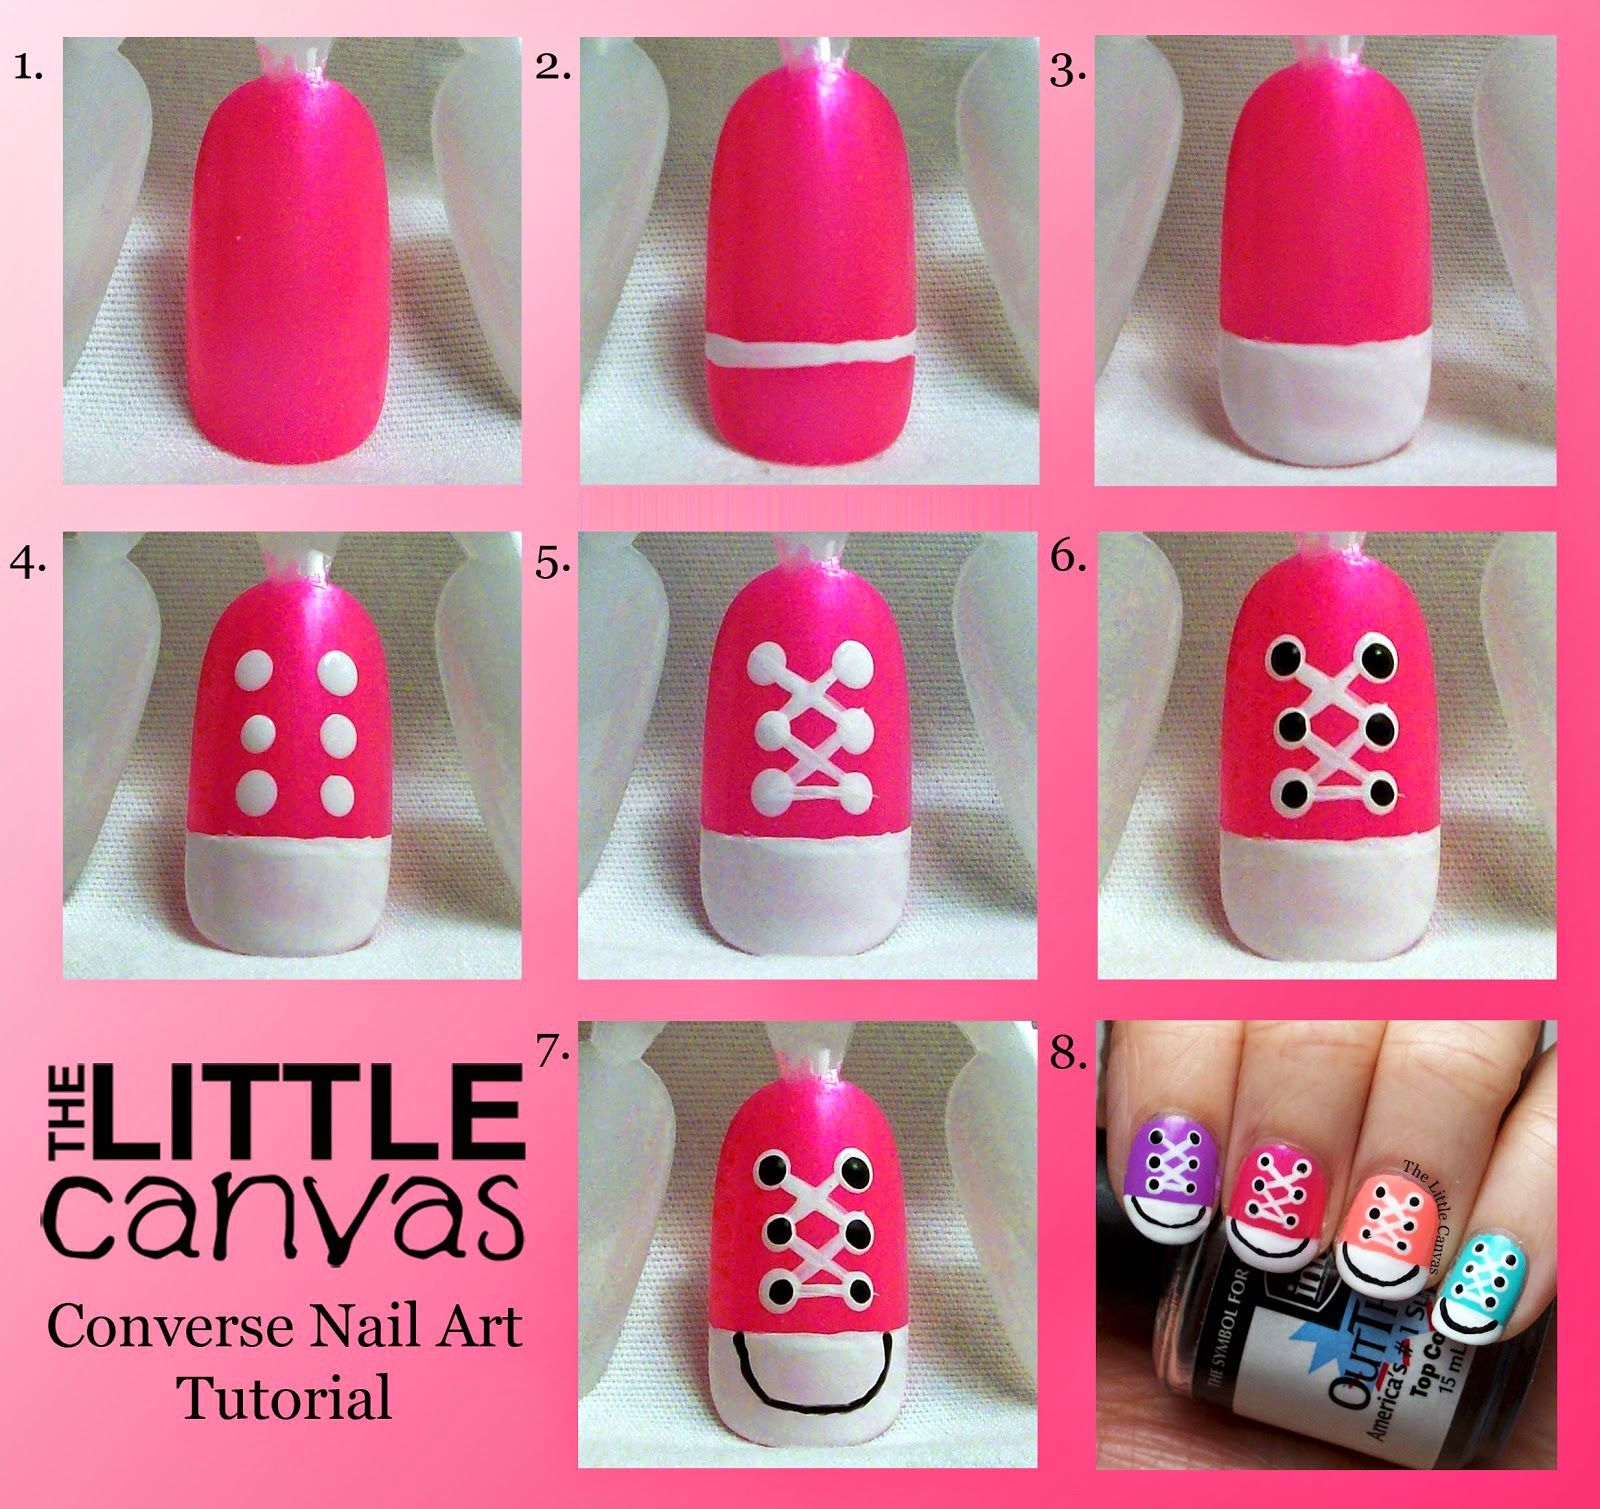 Converse nail art step by step entertainment news photos converse nail art step by step entertainment news photos prinsesfo Gallery